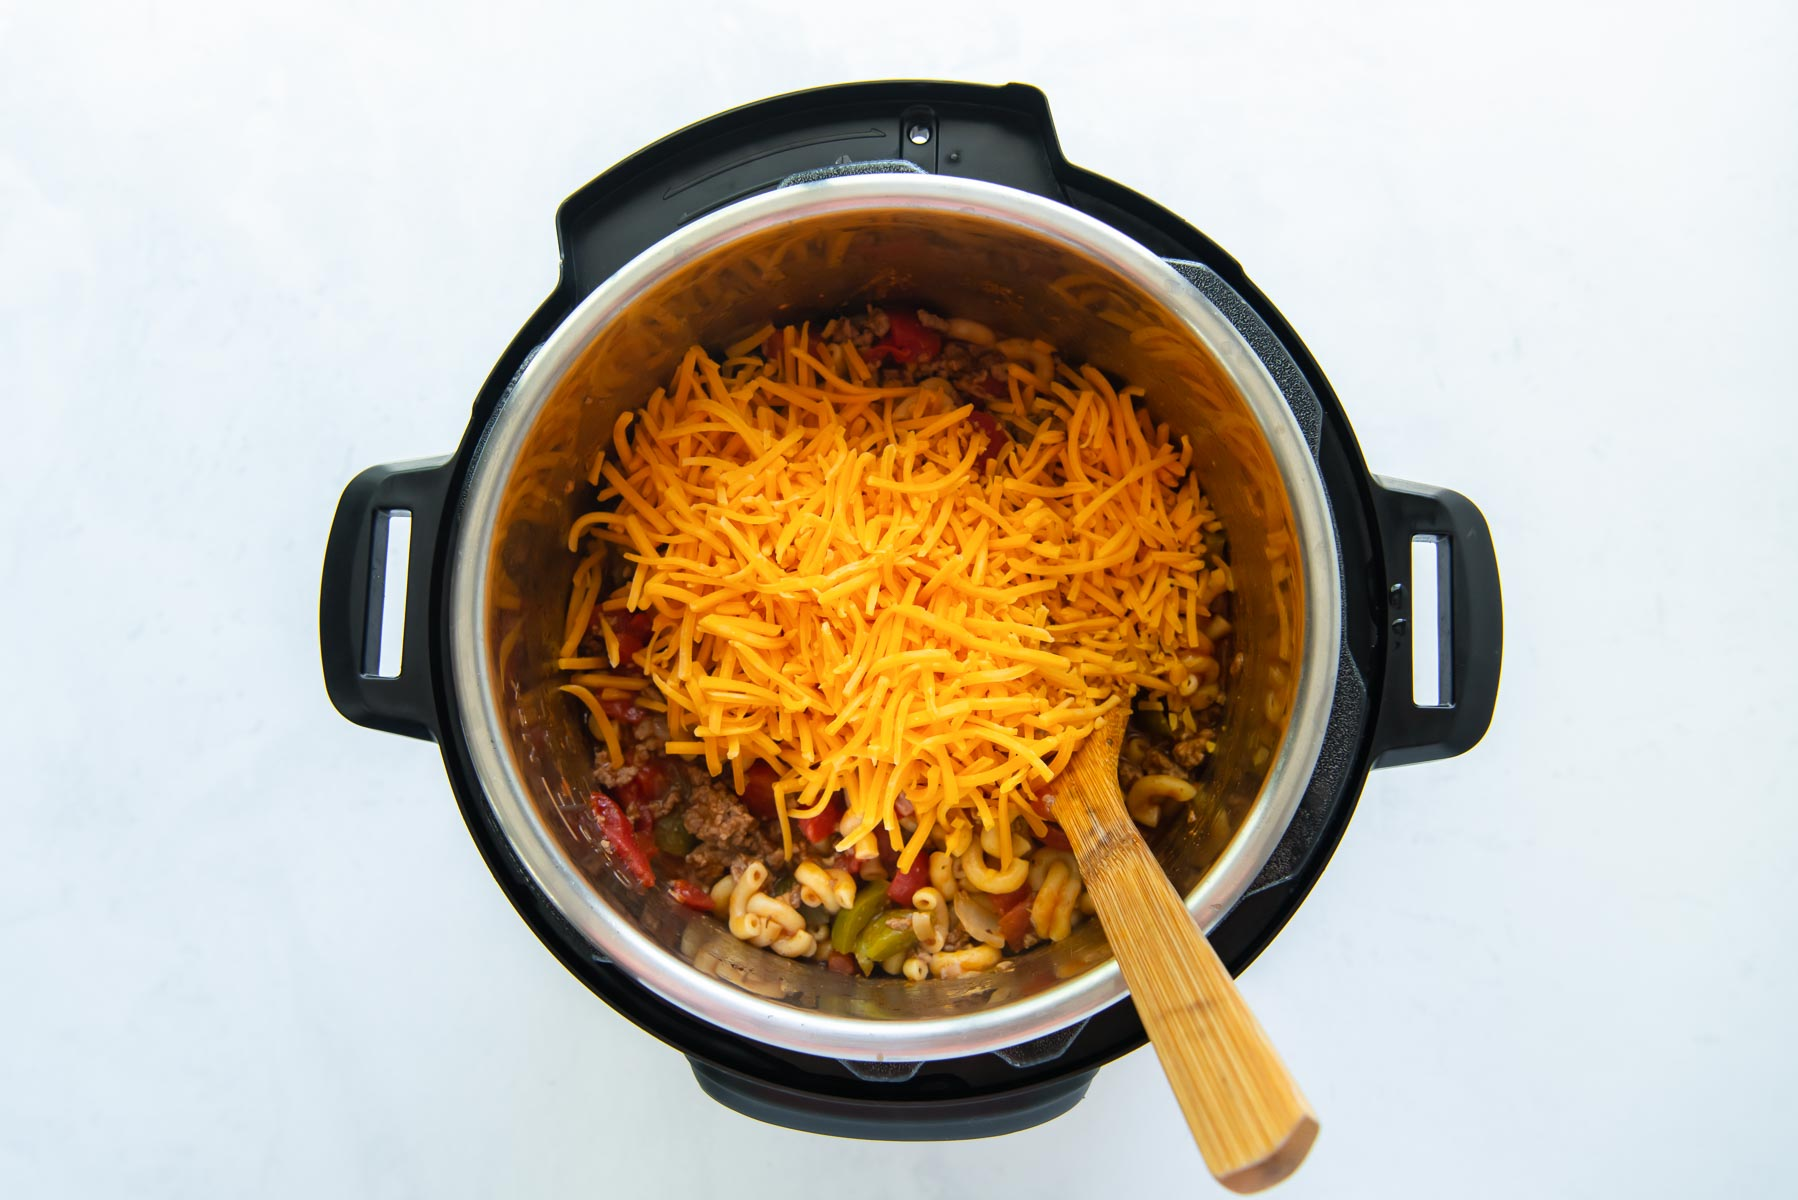 shredded cheddar cheese added to pot